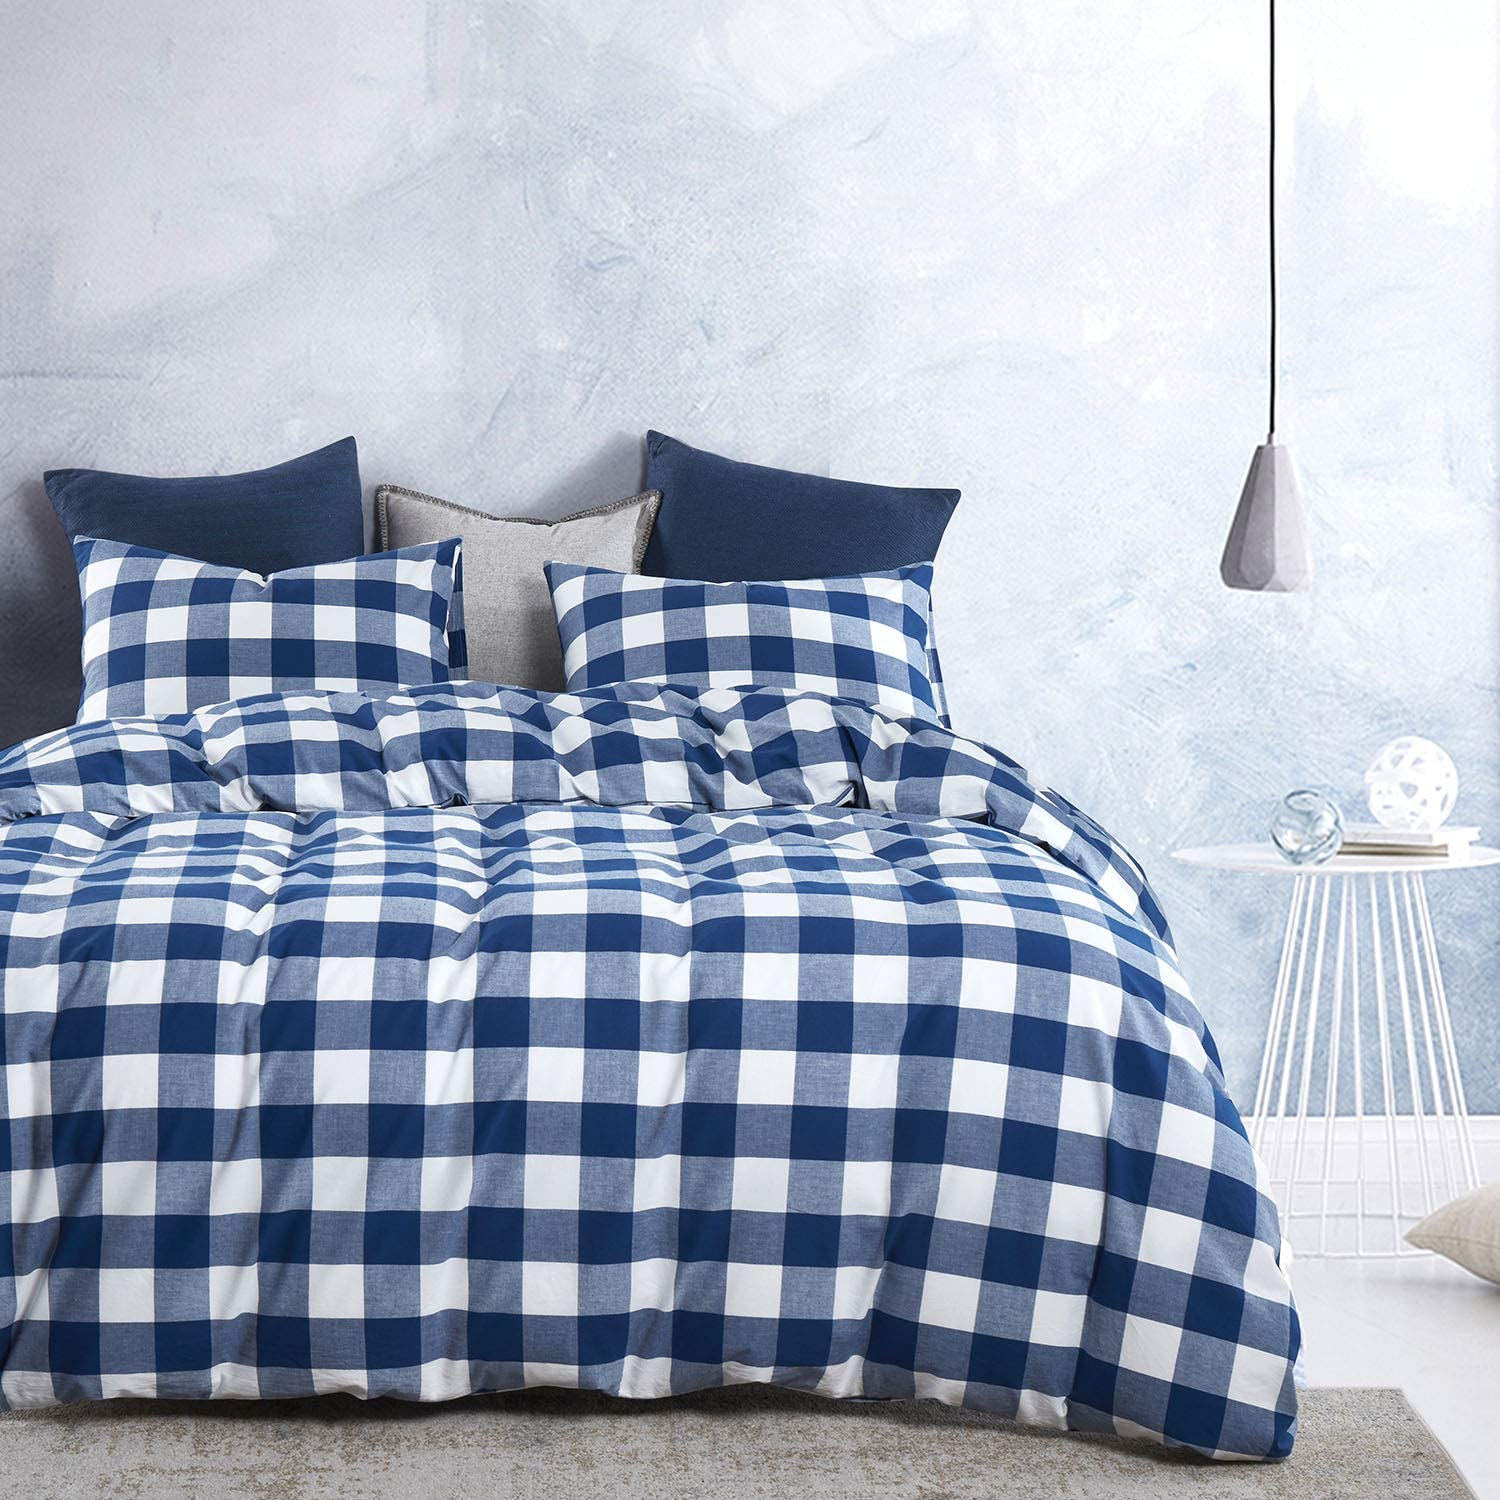 3pcs, Twin Size Wake In Cloud Plaid Duvet Cover Set 100/% Washed Cotton Bedding with Zipper Closure Buffalo Check Gingham Geometric Checker Printed in White Black and Gray